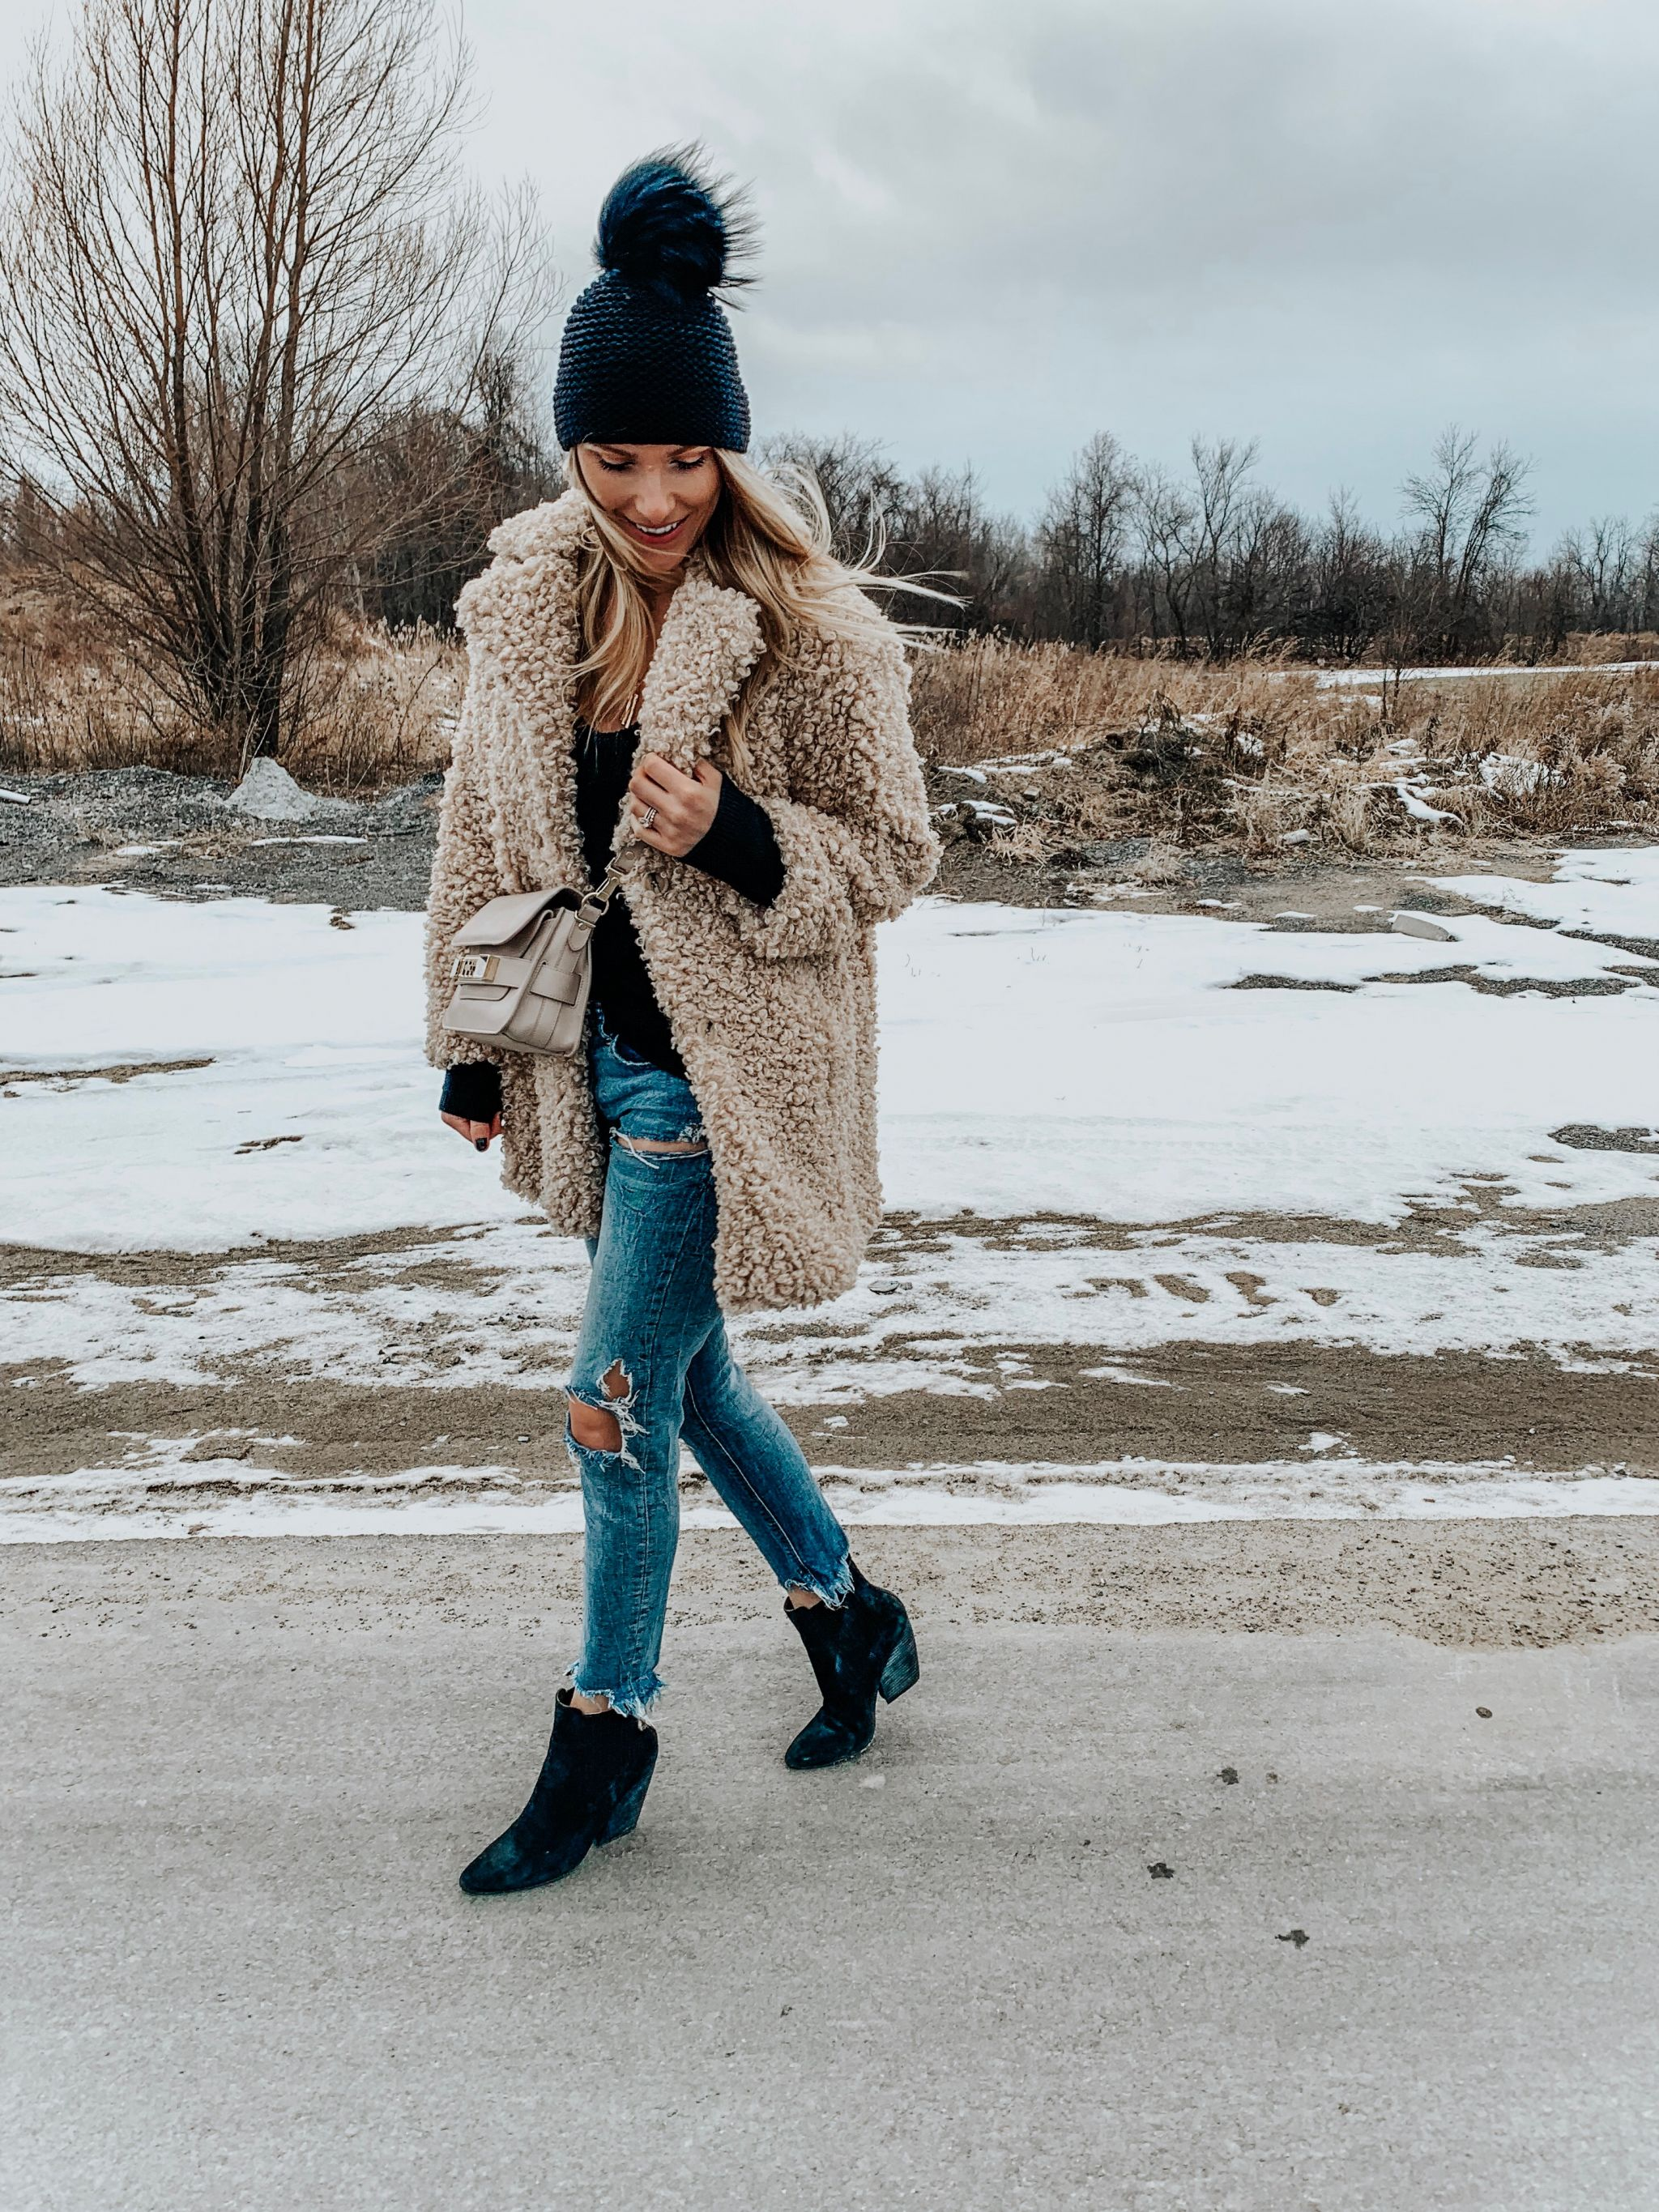 1 girl wearing teddy coat and ripped jeans